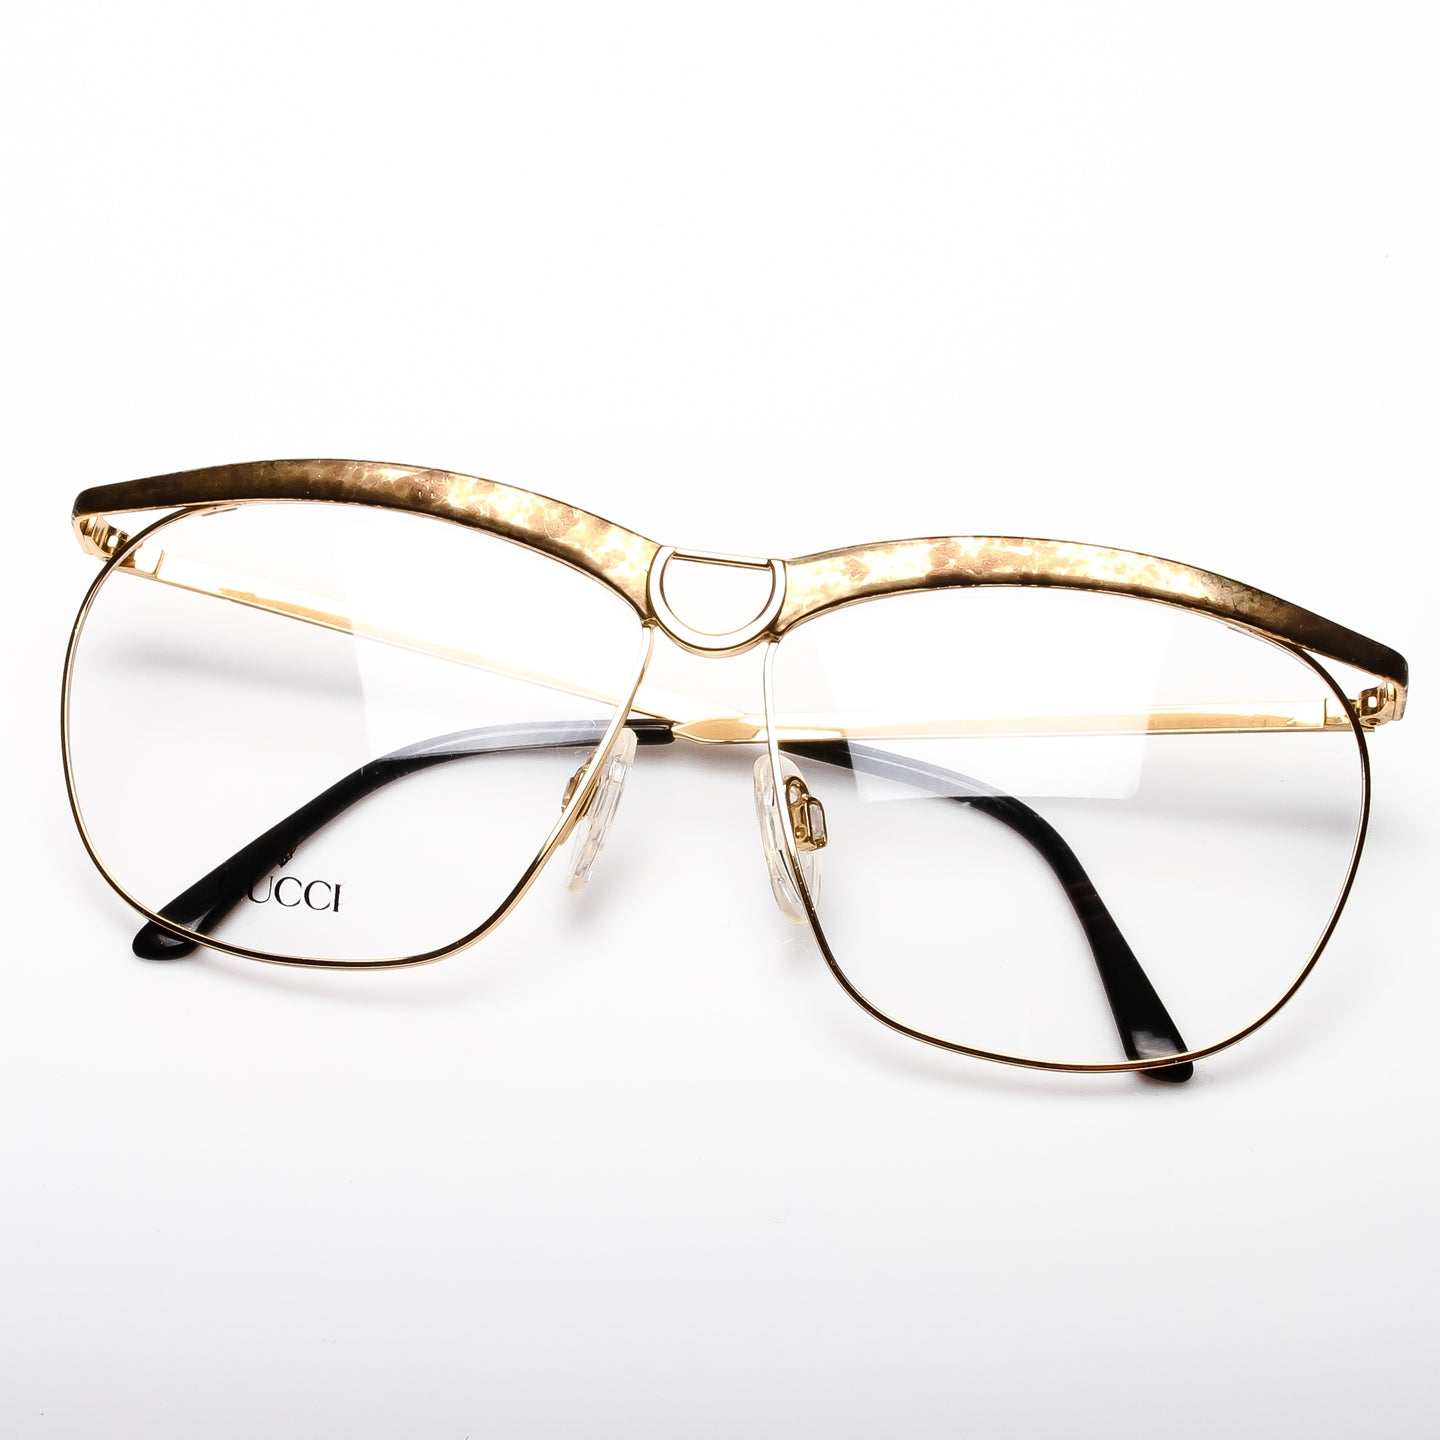 Gucci 2217 03H, Gucci , glasses frames, eyeglasses online, eyeglass frames, mens glasses, womens glasses, buy glasses online, designer eyeglasses, vintage sunglasses, retro sunglasses, vintage glasses, sunglass, eyeglass, glasses, lens, vintage frames company, vf